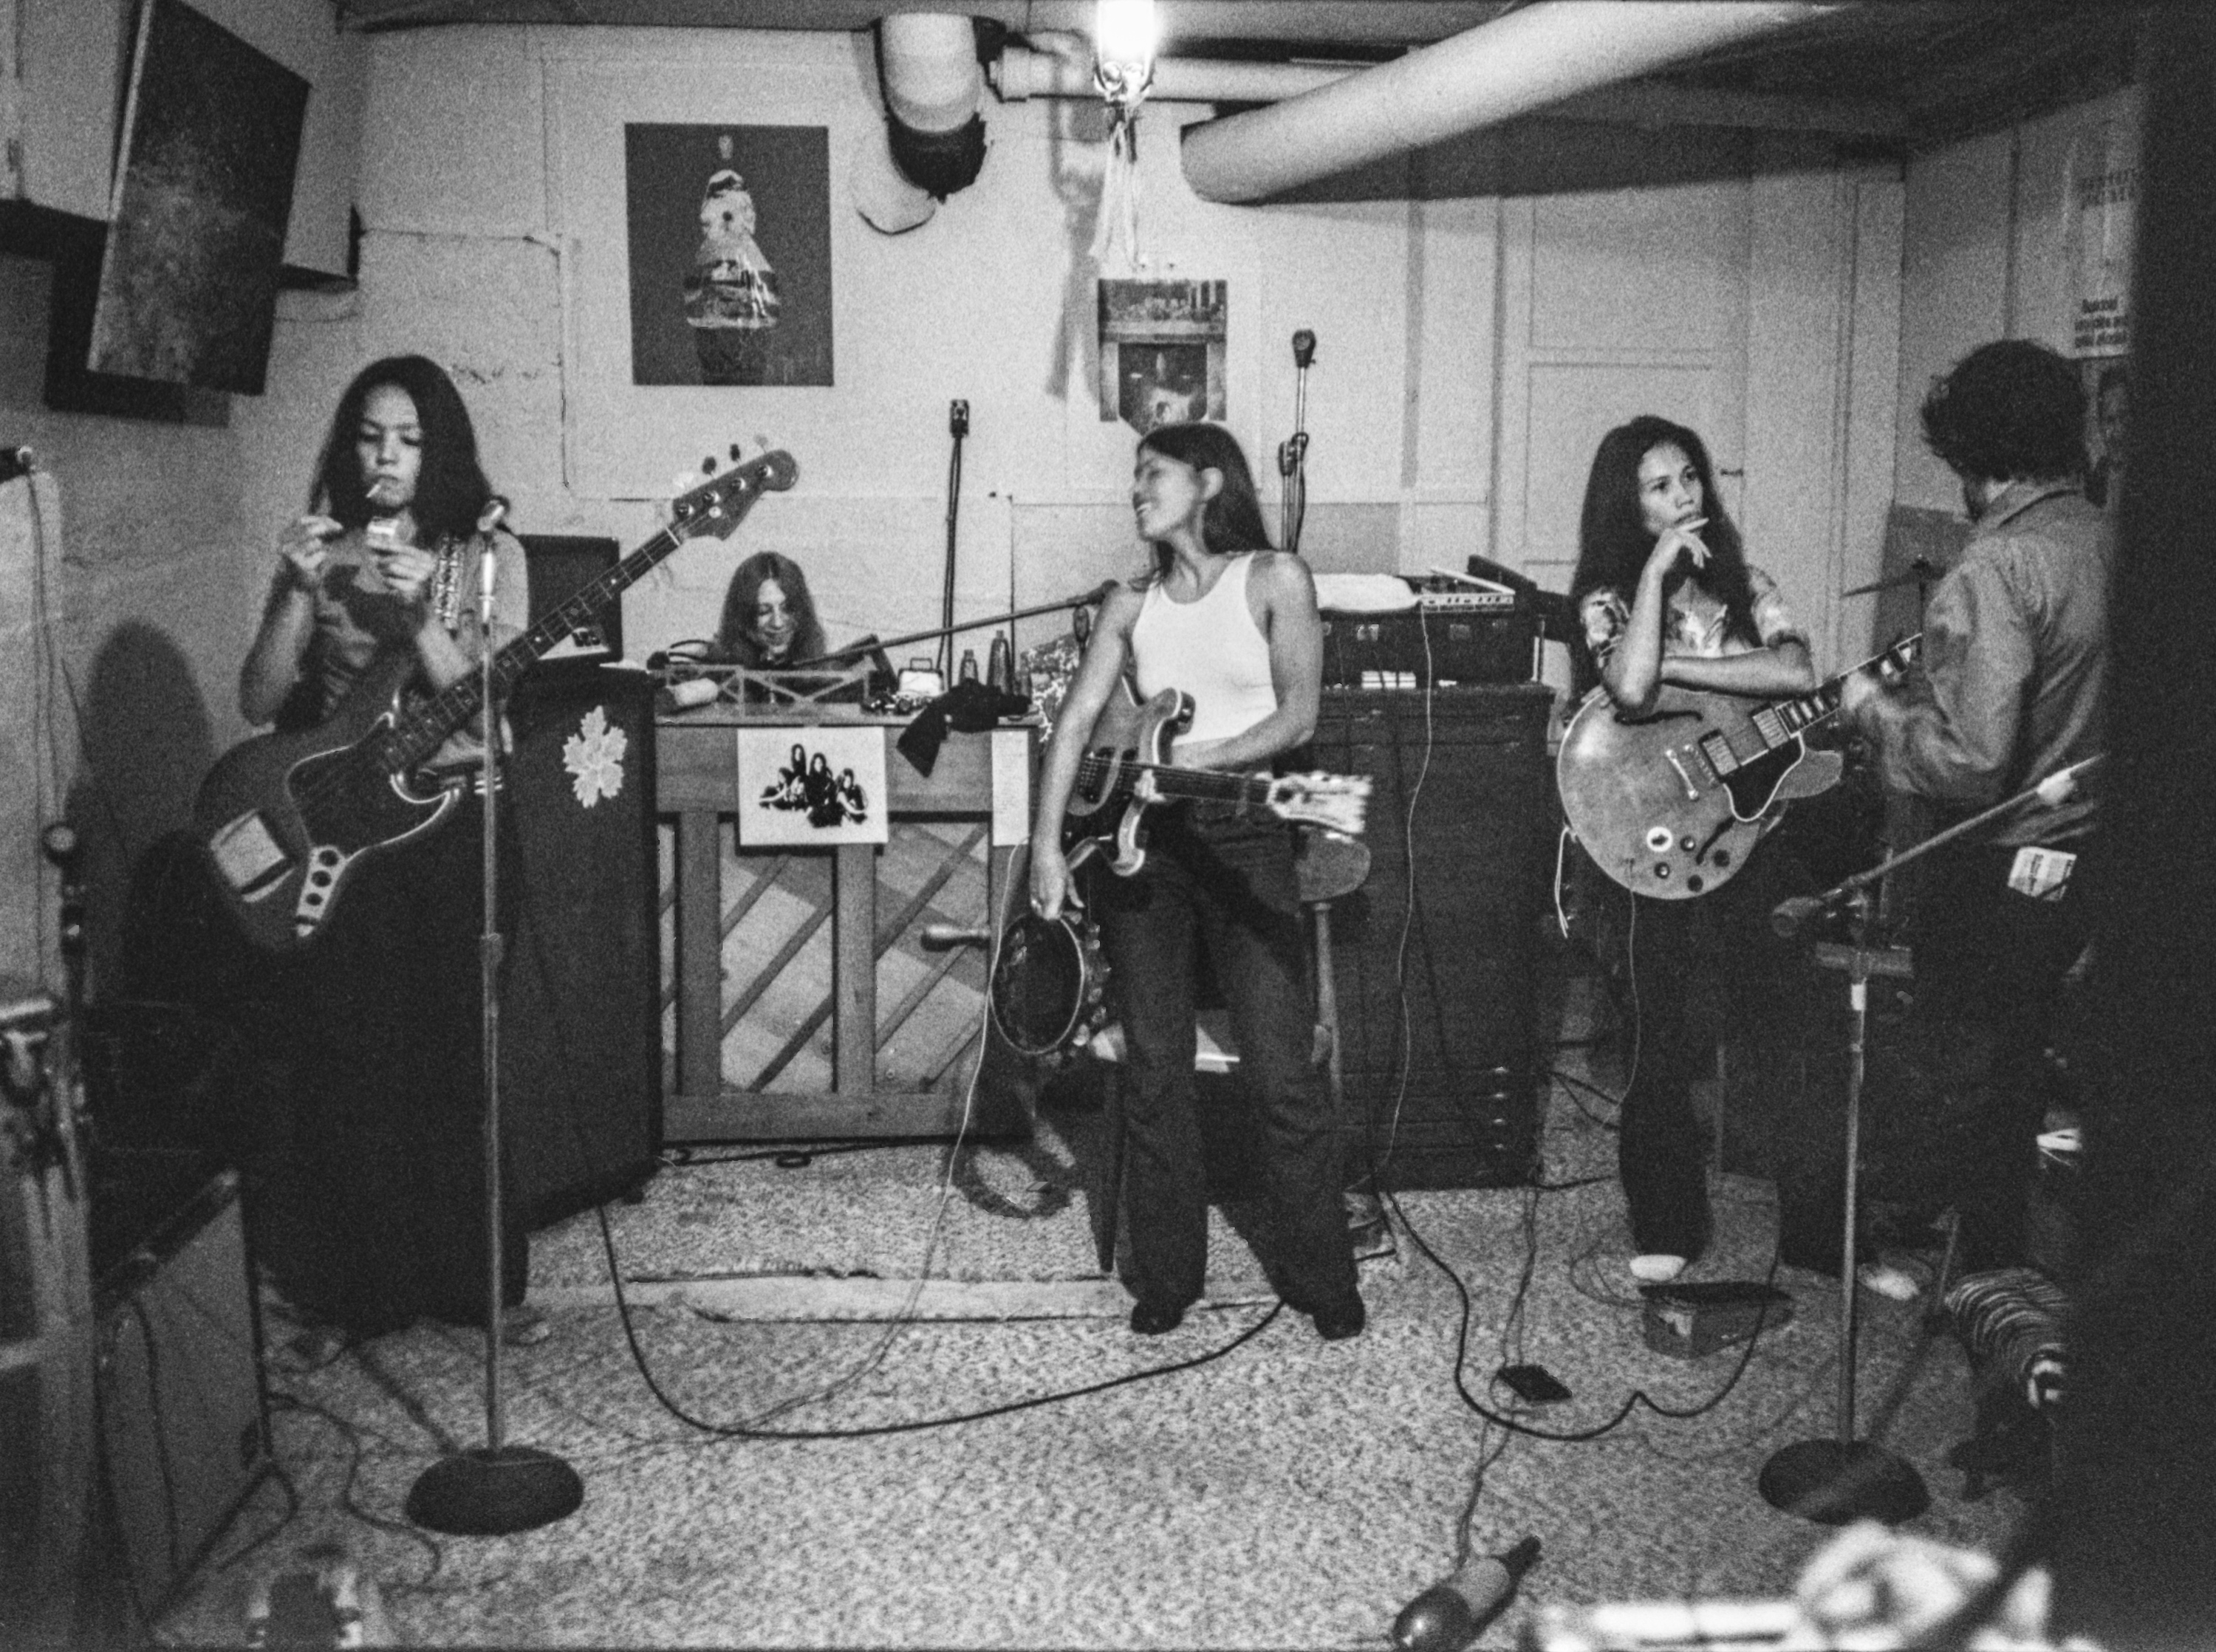 The all-female rock band Fanny made five albums between 1970 and 1975. A new documentary about the band opens at the Boston Women's Film Festival. (Courtesy Linda Wolf)